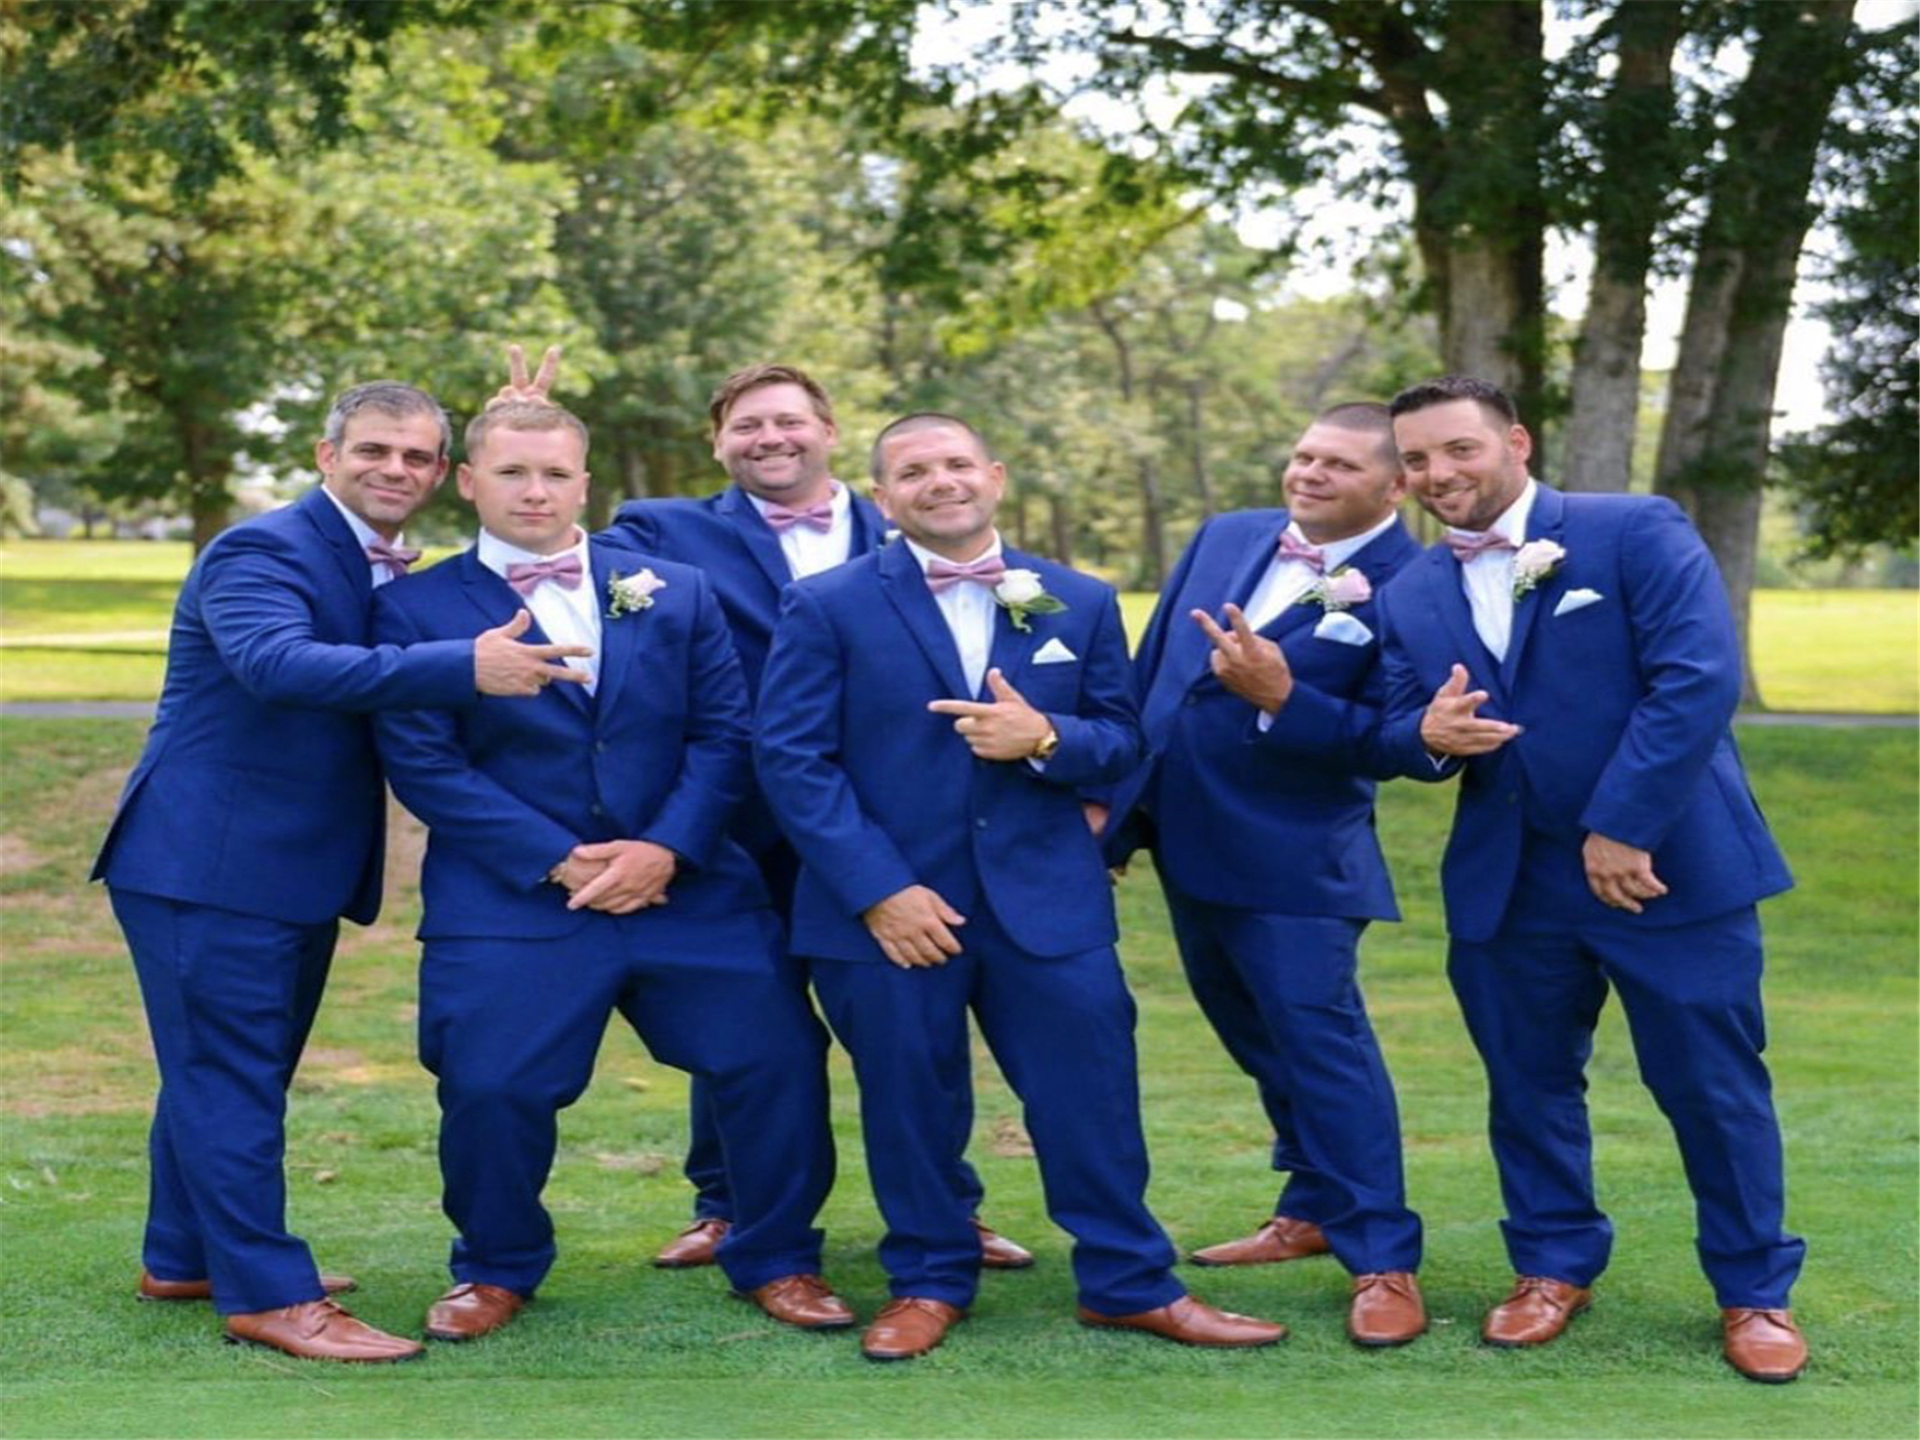 6 groomsman posing for a photo